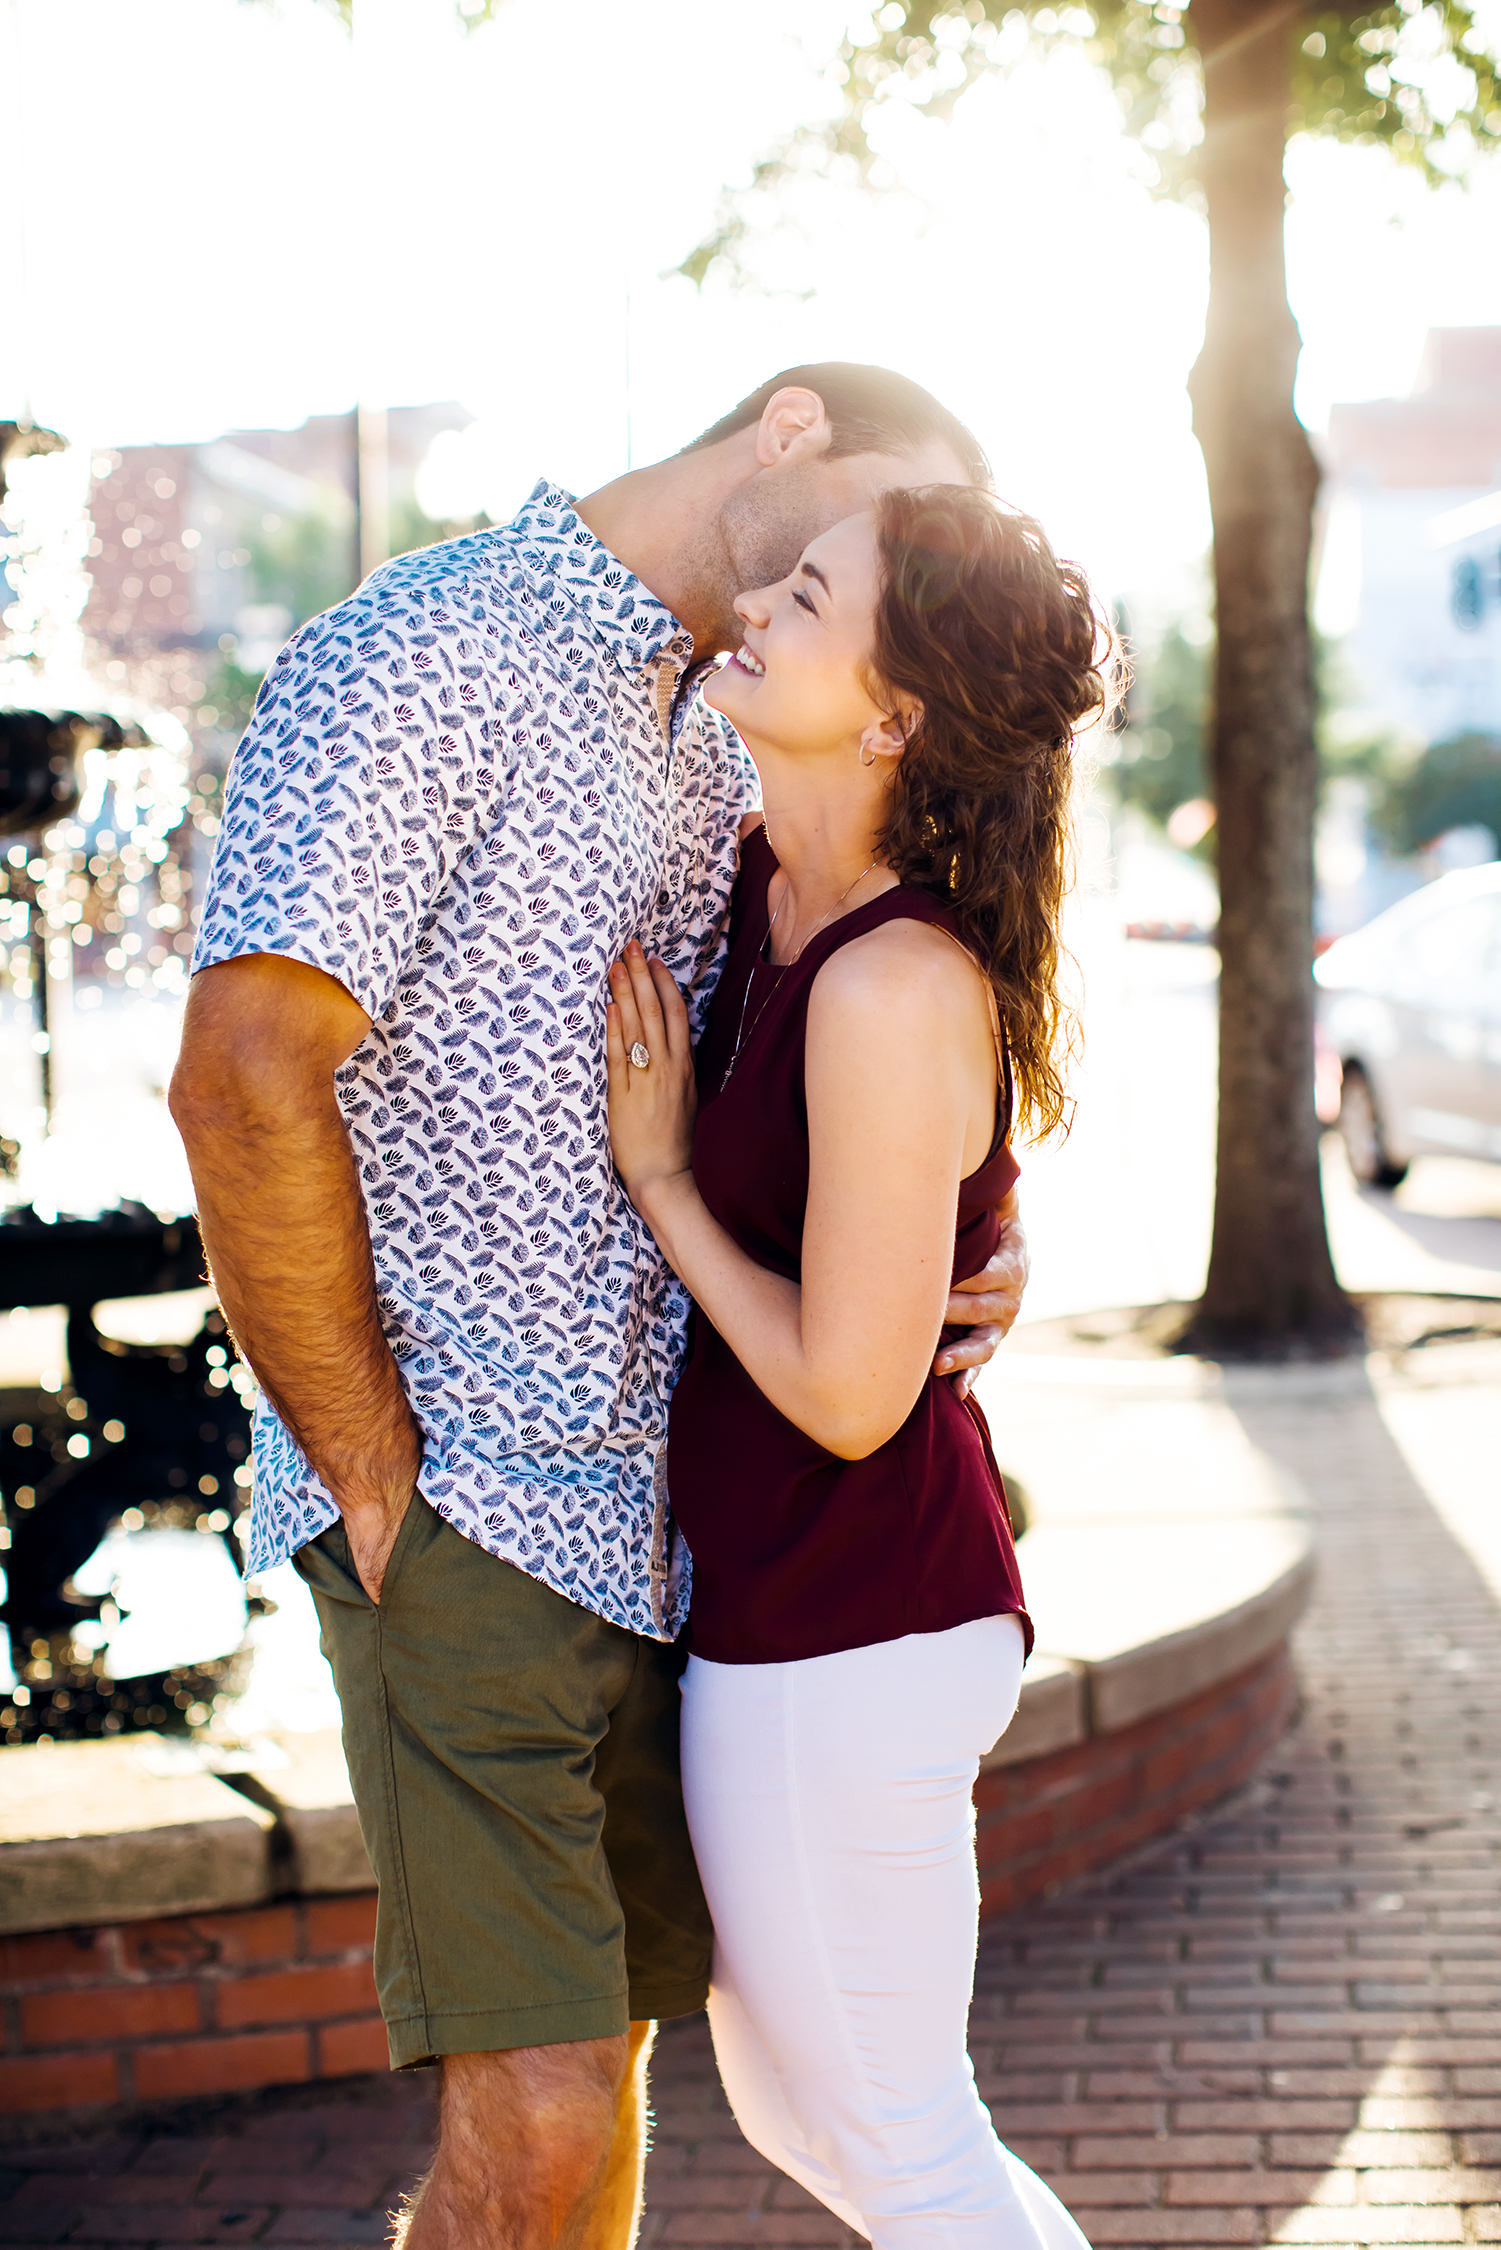 Wedding photographer NC engagement session Fayetteville Raleigh southern pines downtown